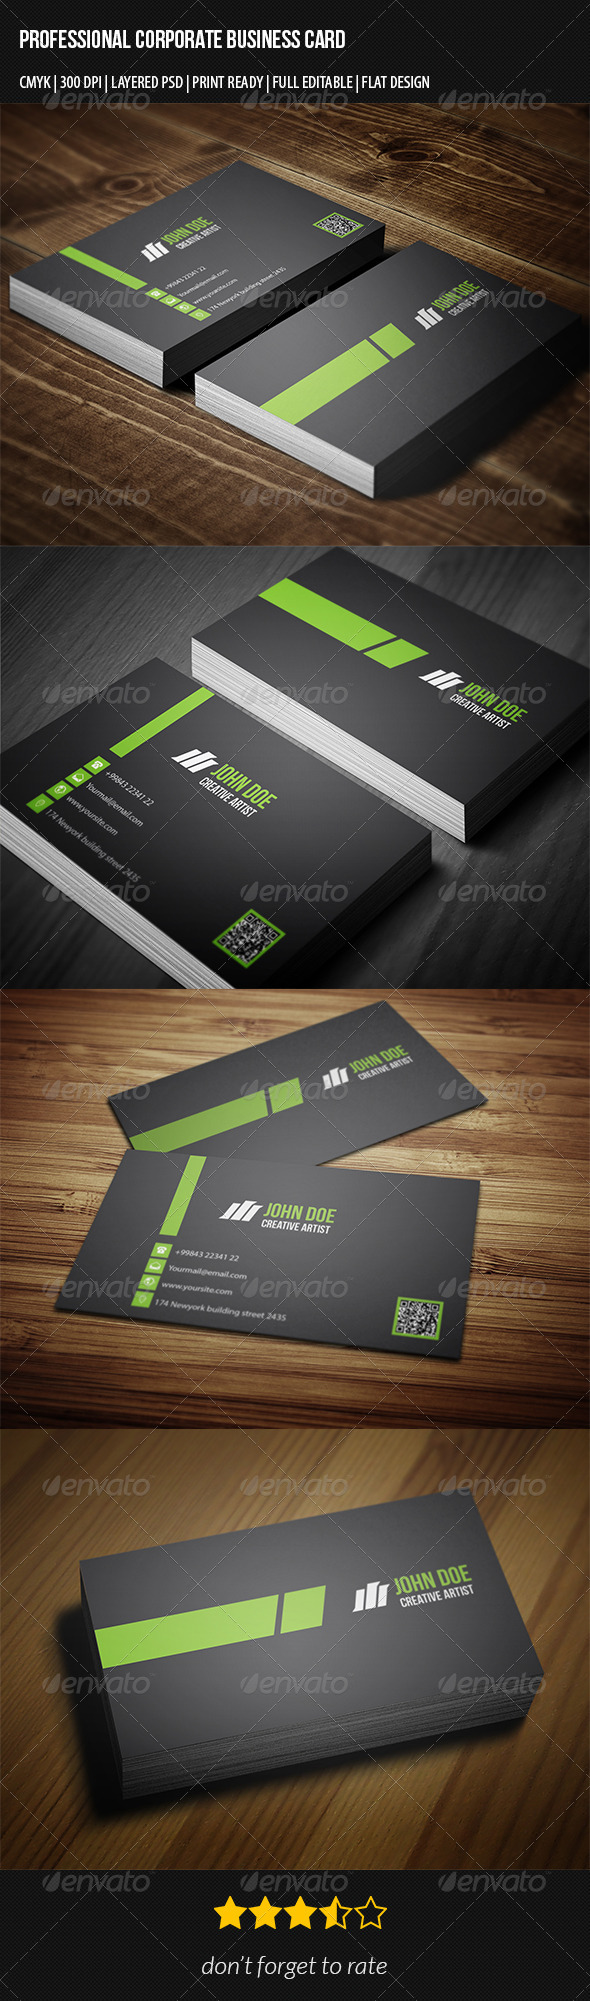 GraphicRiver Professional Corporate Business Card 7301939